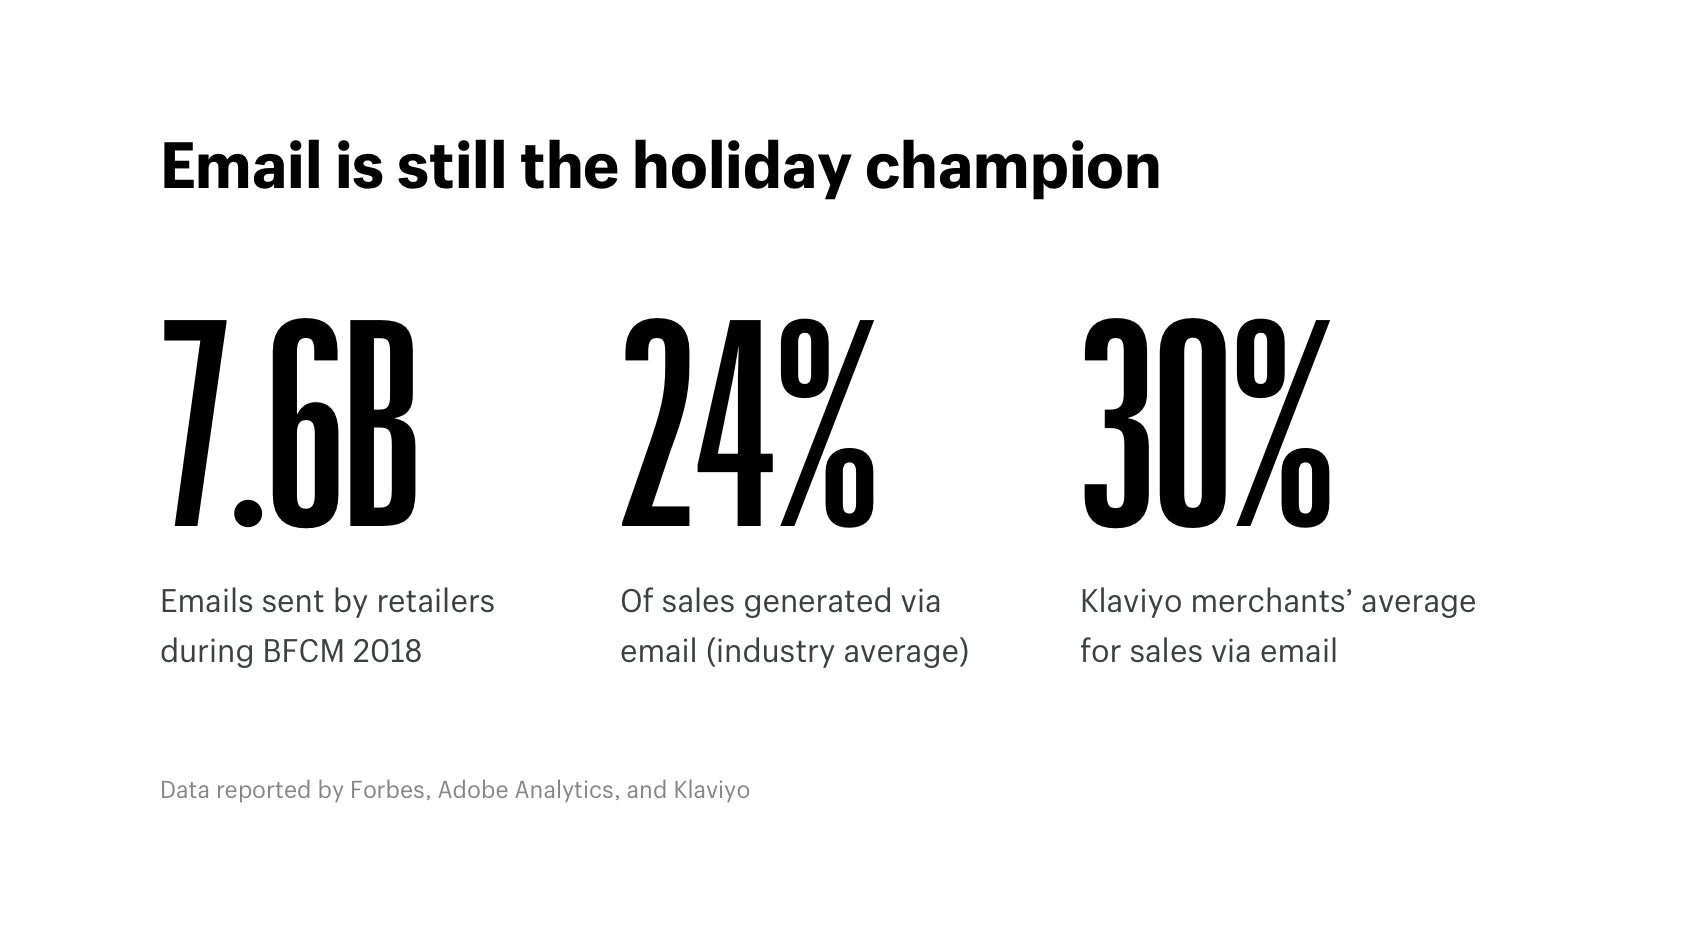 Email is still the holiday champion